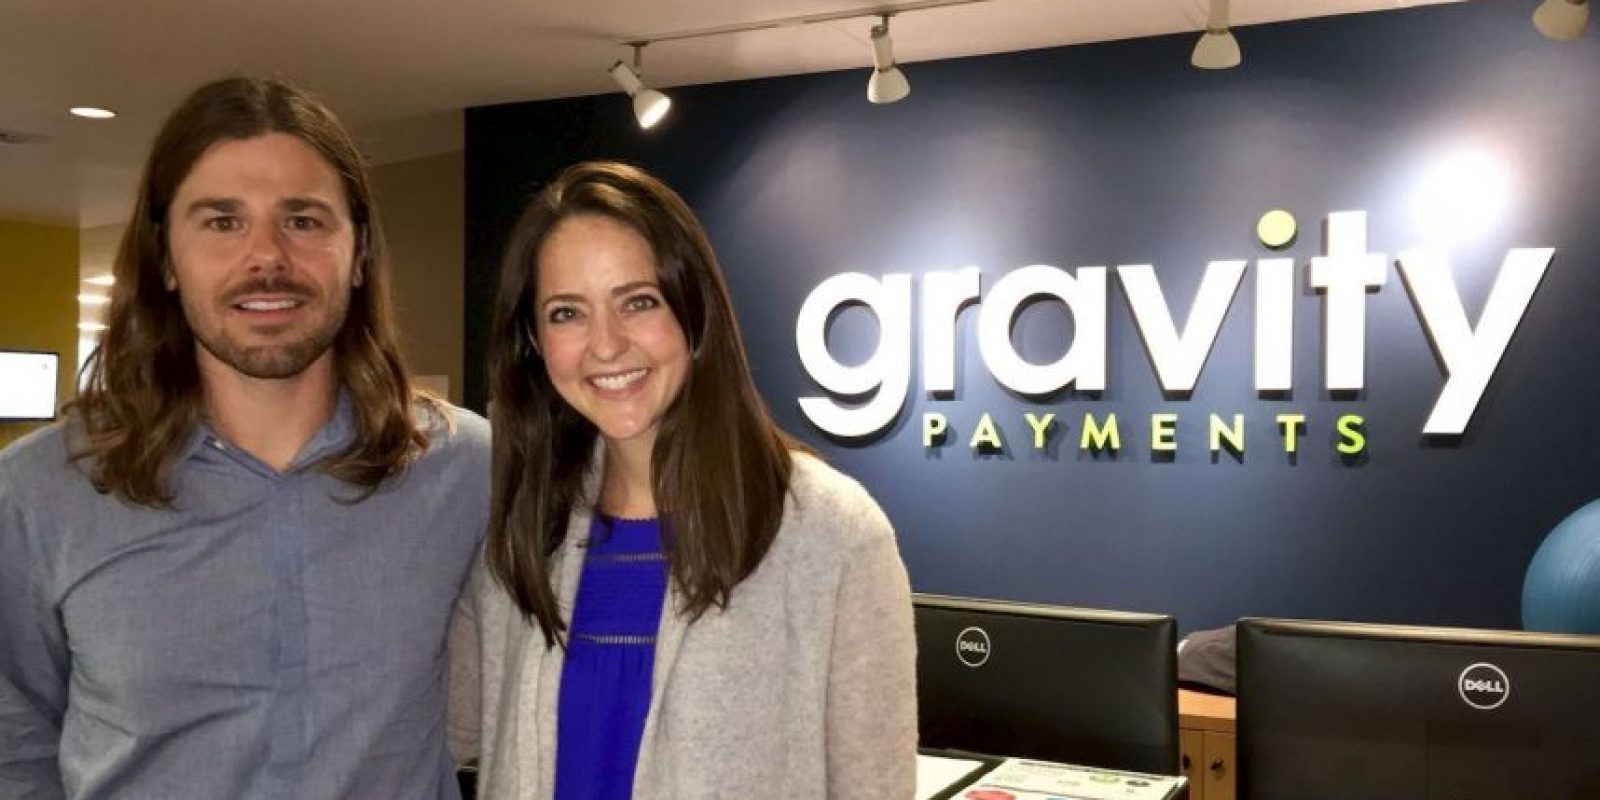 Gravity Payments tiene 120 empleados Foto: Facebook.com/DanPriceSeattle